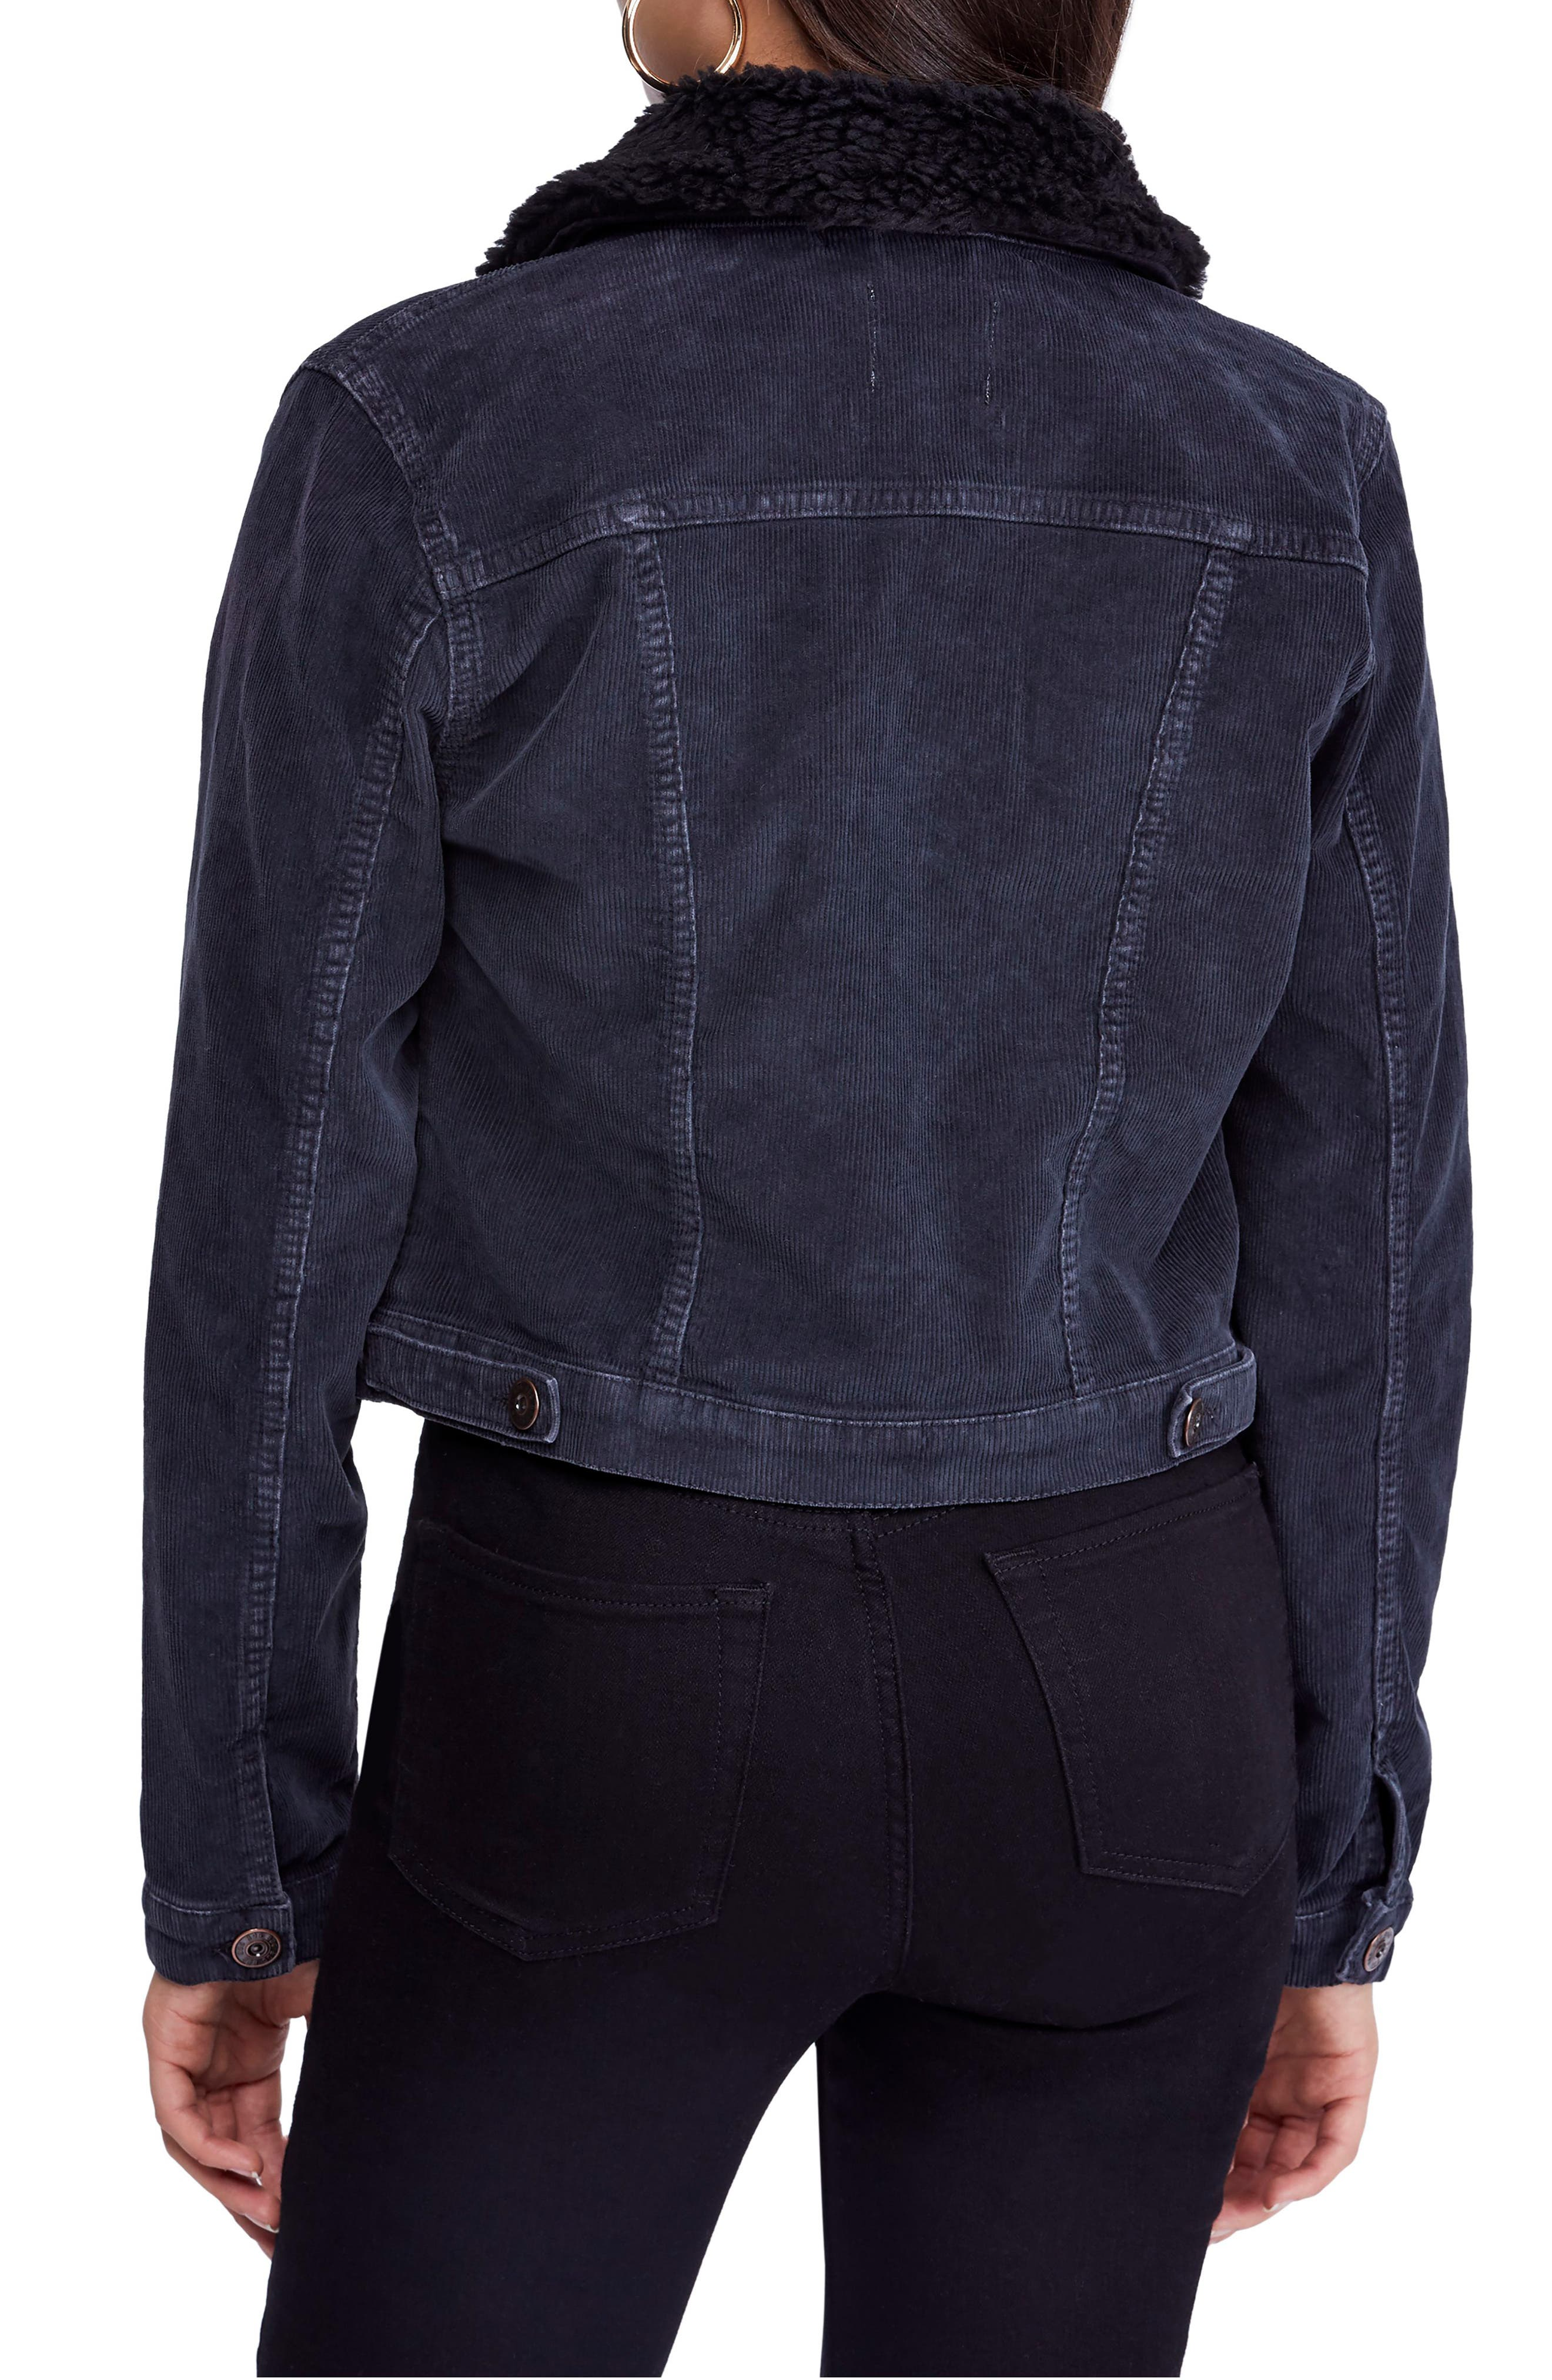 Urban Outfitters '90s Fleece Collar Corduroy Crop Jacket,                             Alternate thumbnail 2, color,                             BLACK